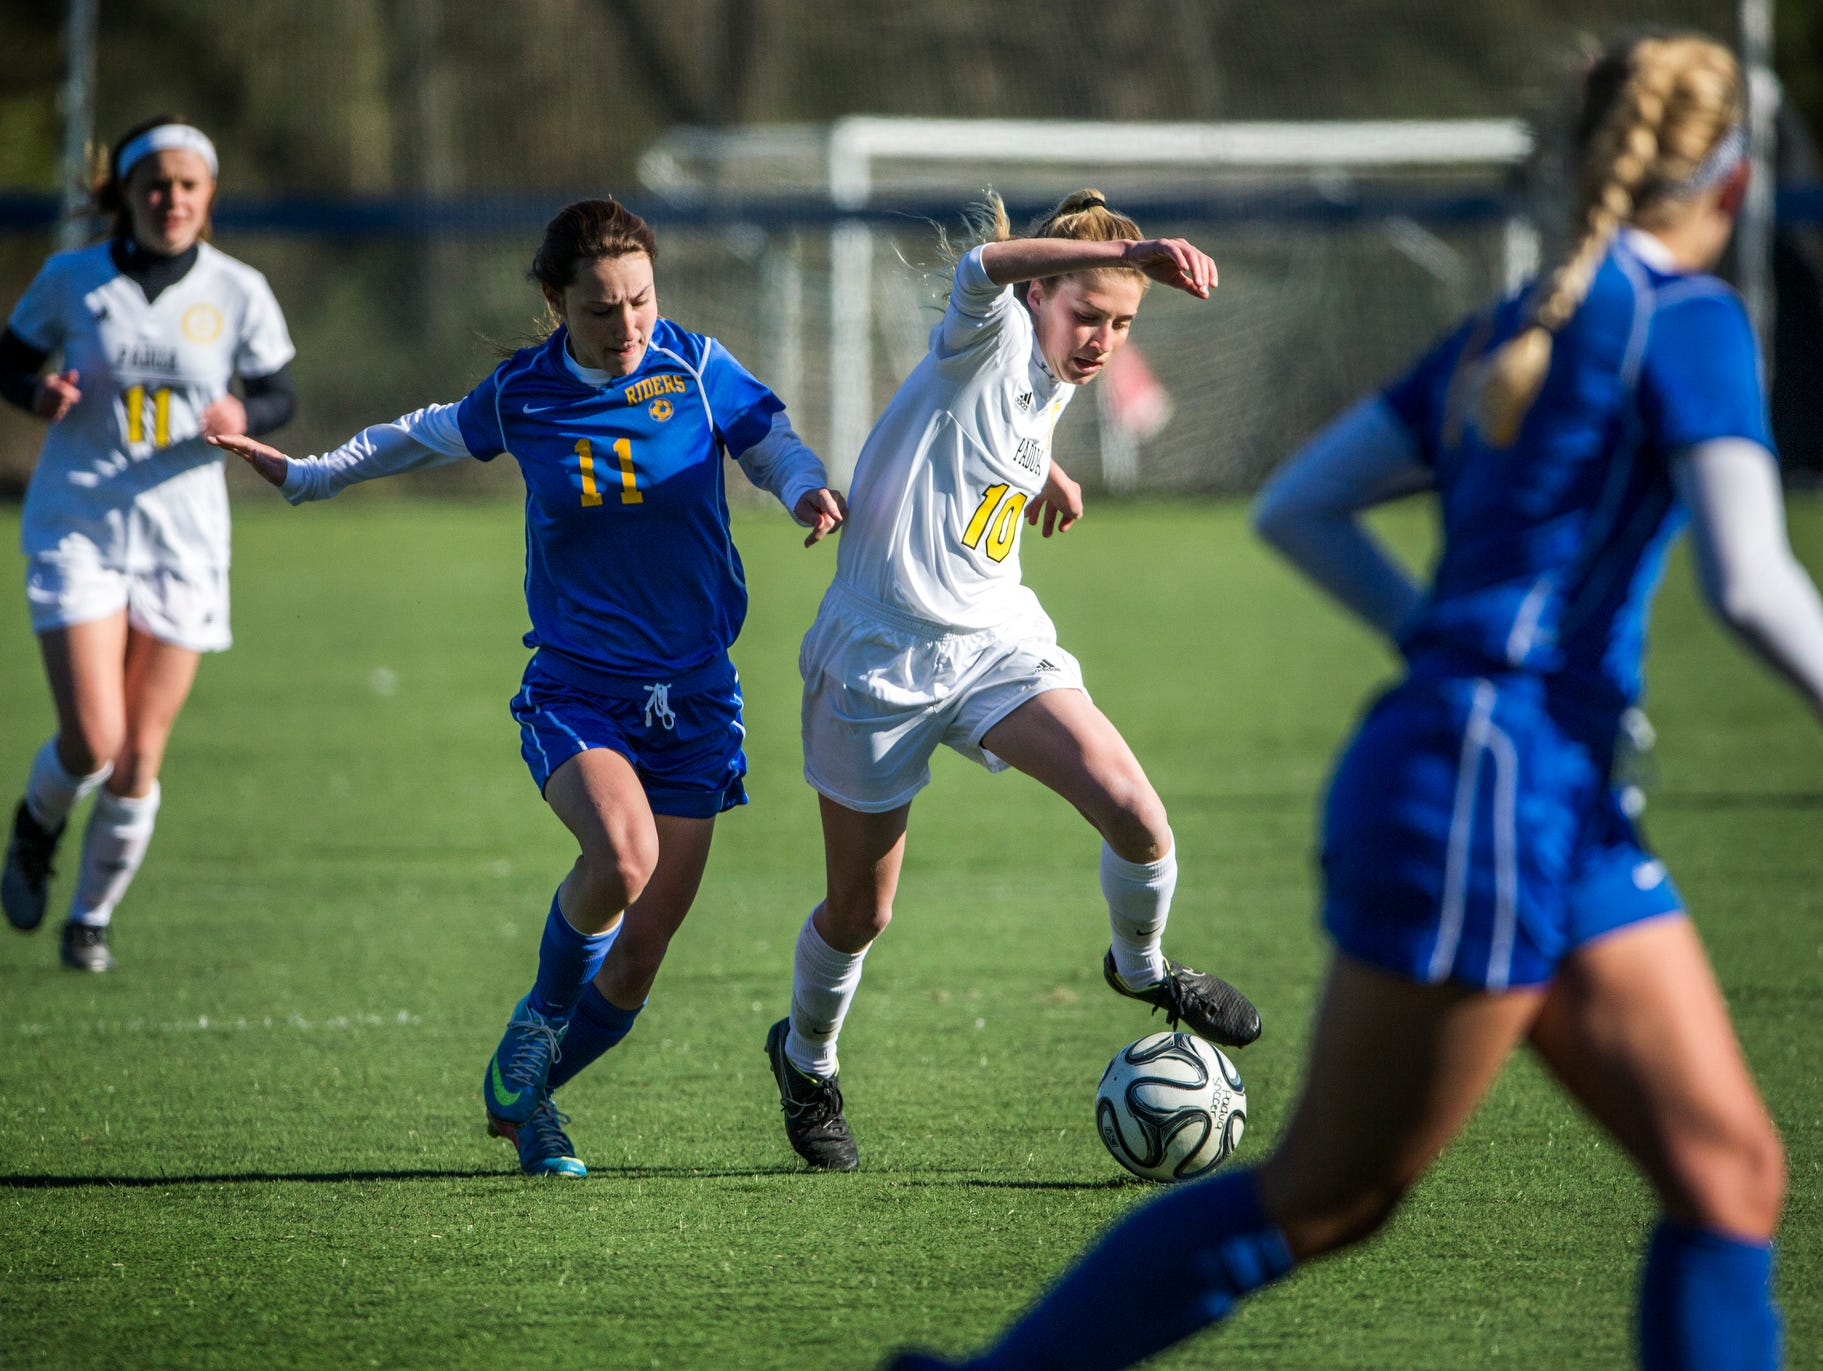 Padua's Ashlee Brentlinger (right) works past Caesar Rodney's Cowan Cummings (left) in the second half of Padua's 2-0 win over Caesar Rodney at the Hockessin Soccer Club on Tuesday afternoon.